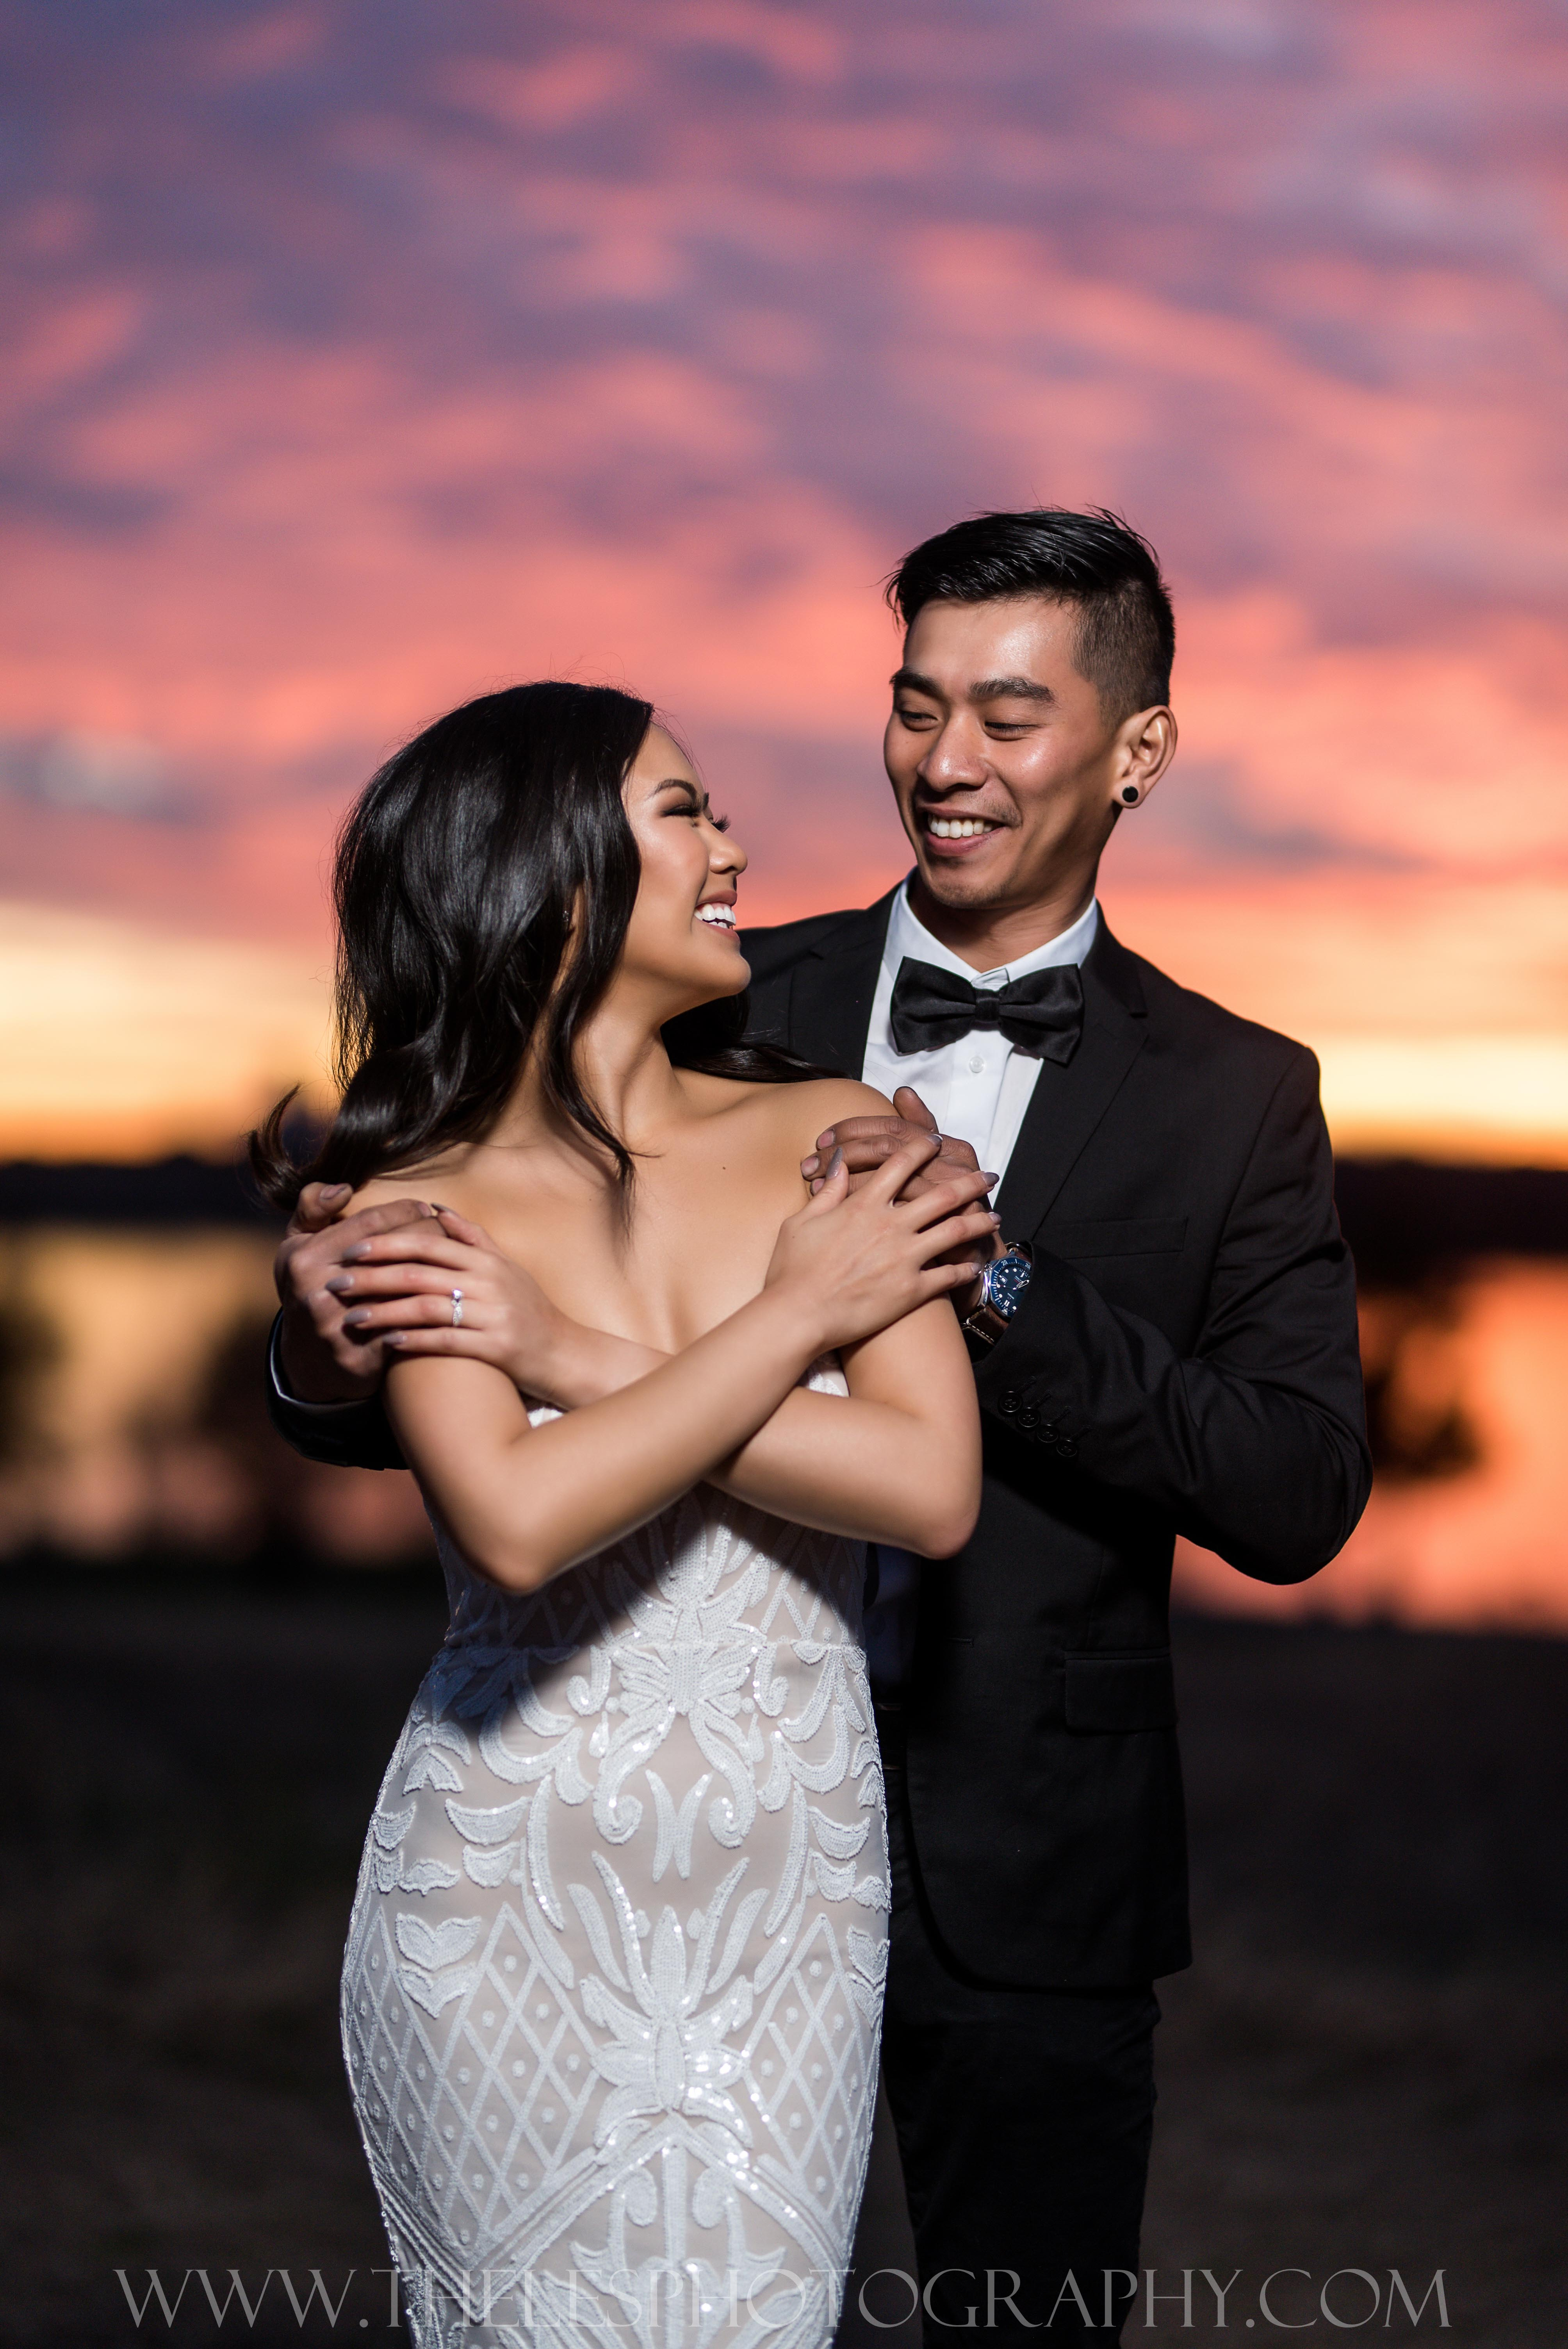 Thu and Hieu's Engagement Highlight 16